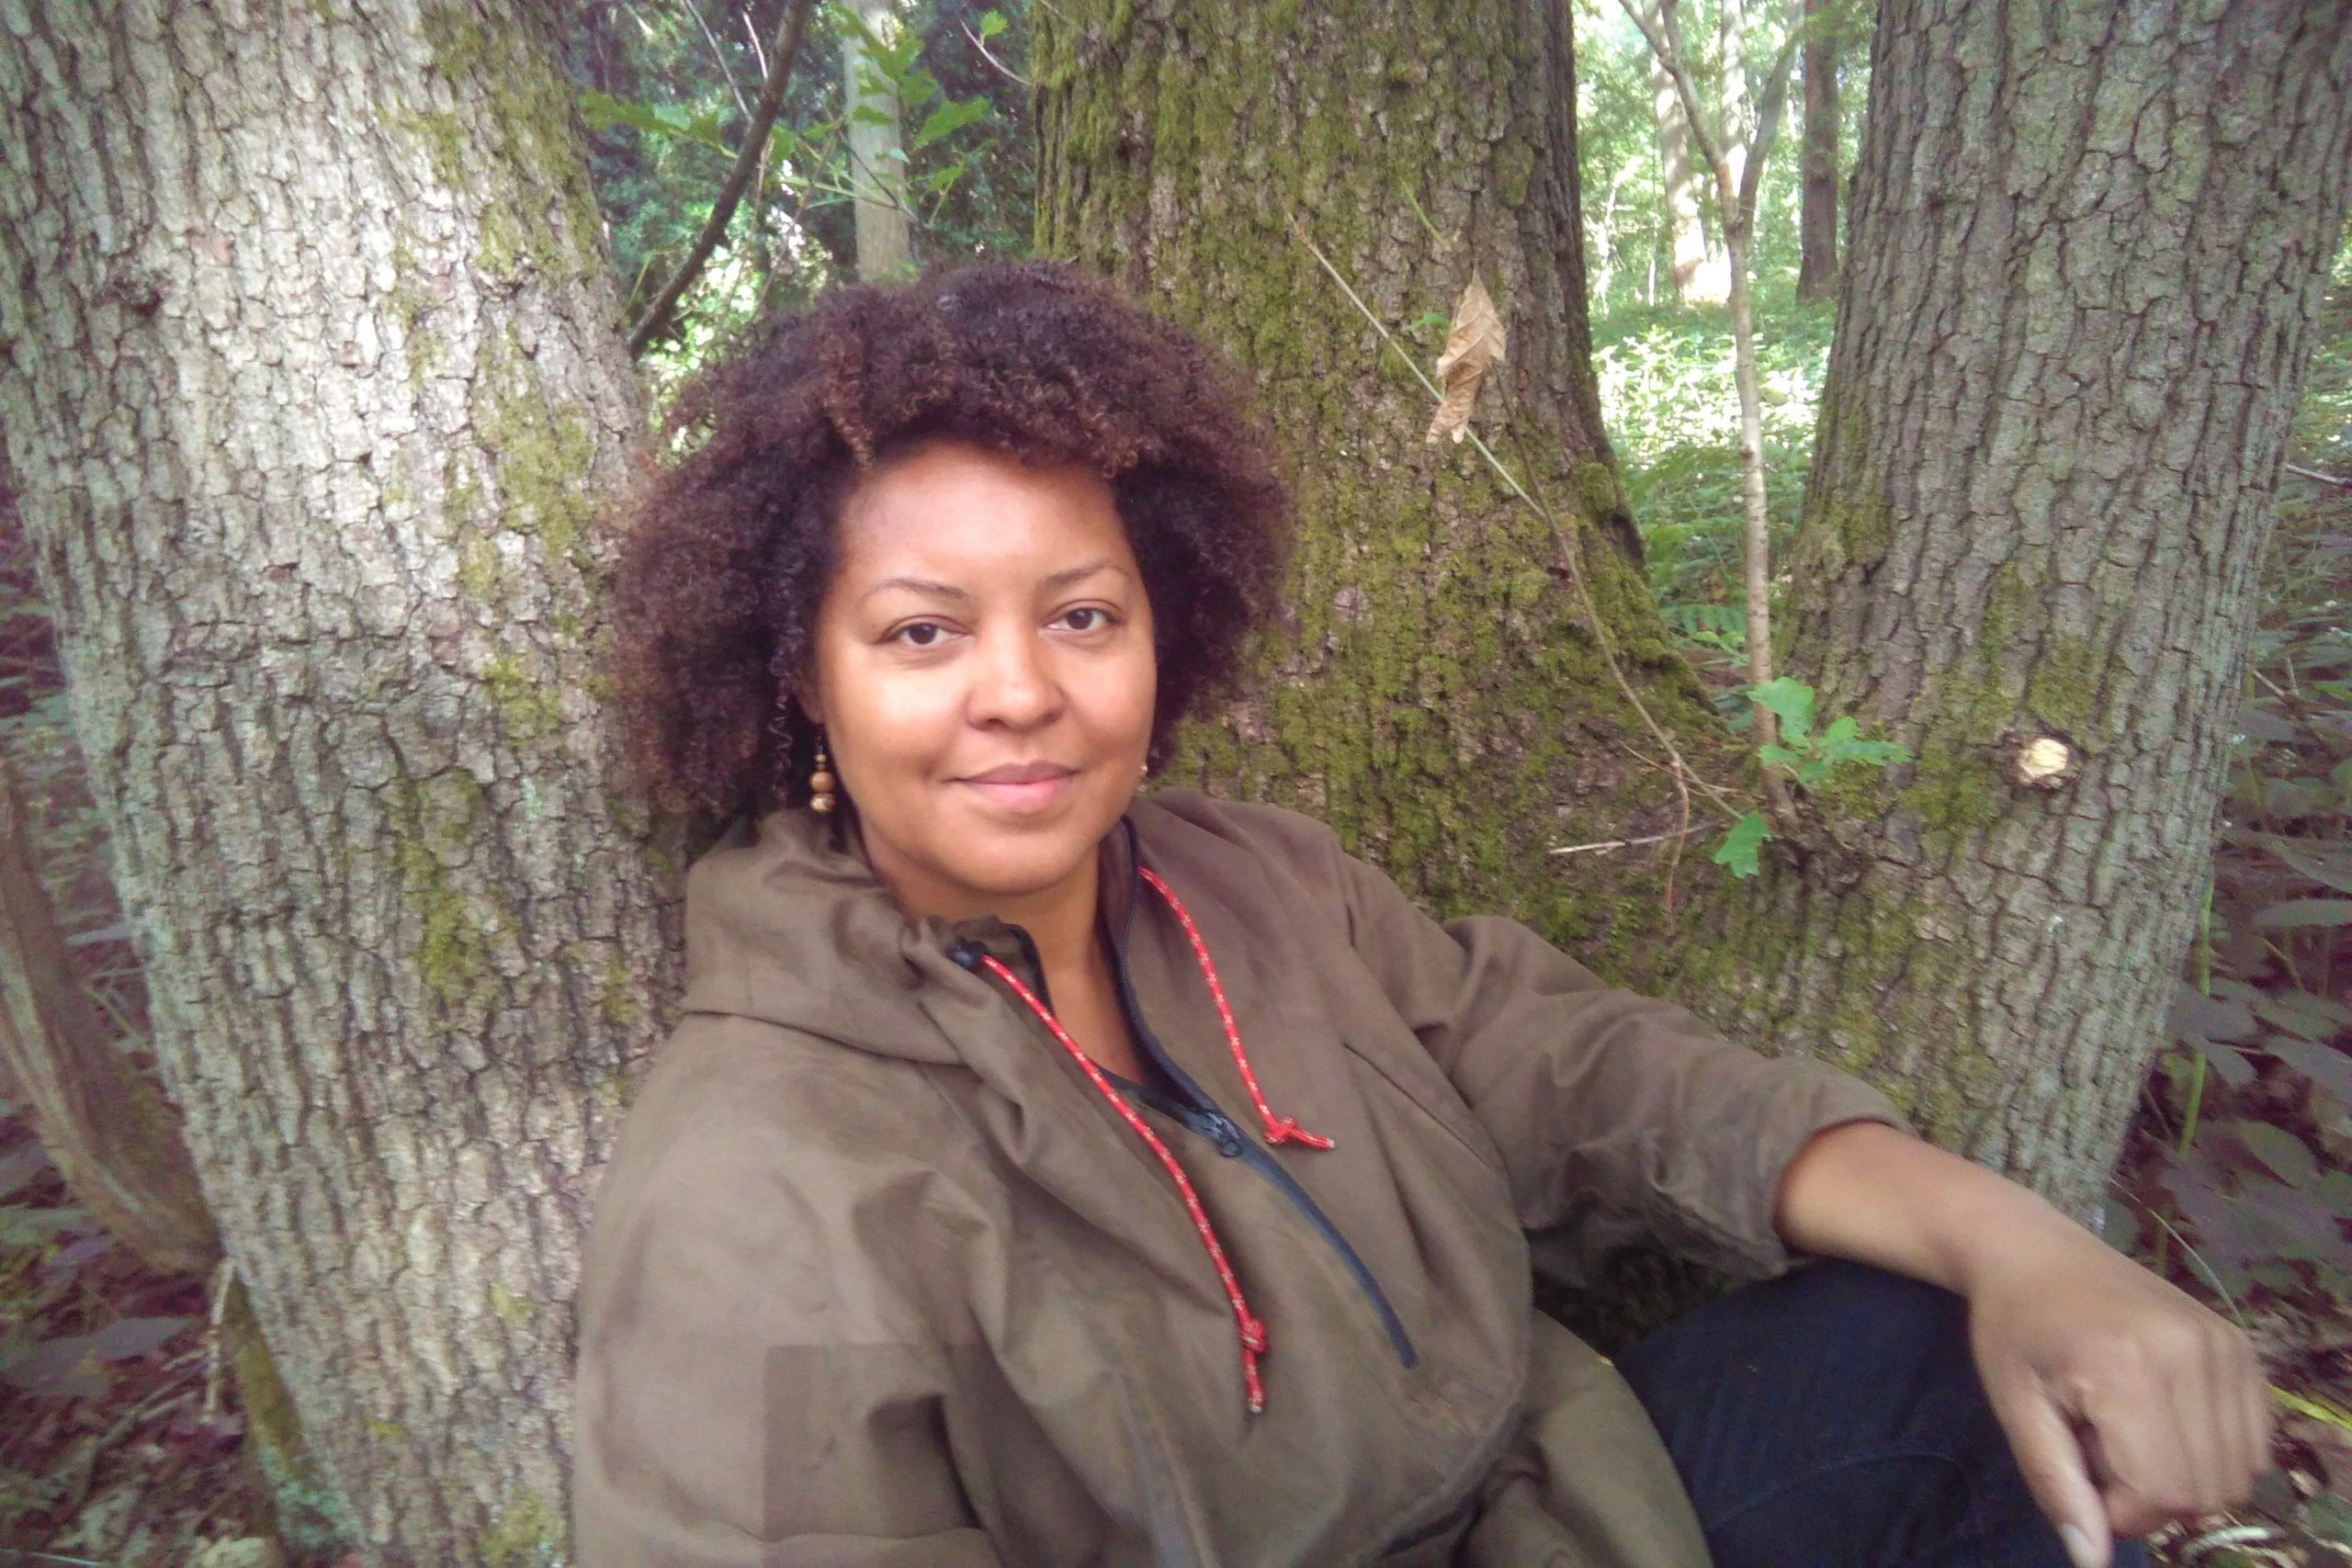 Beth sitting in front of a tree looking at the camera. She has tight curly brown hair and is wearing a dark green rain coat. Her arms is resting on her knee.